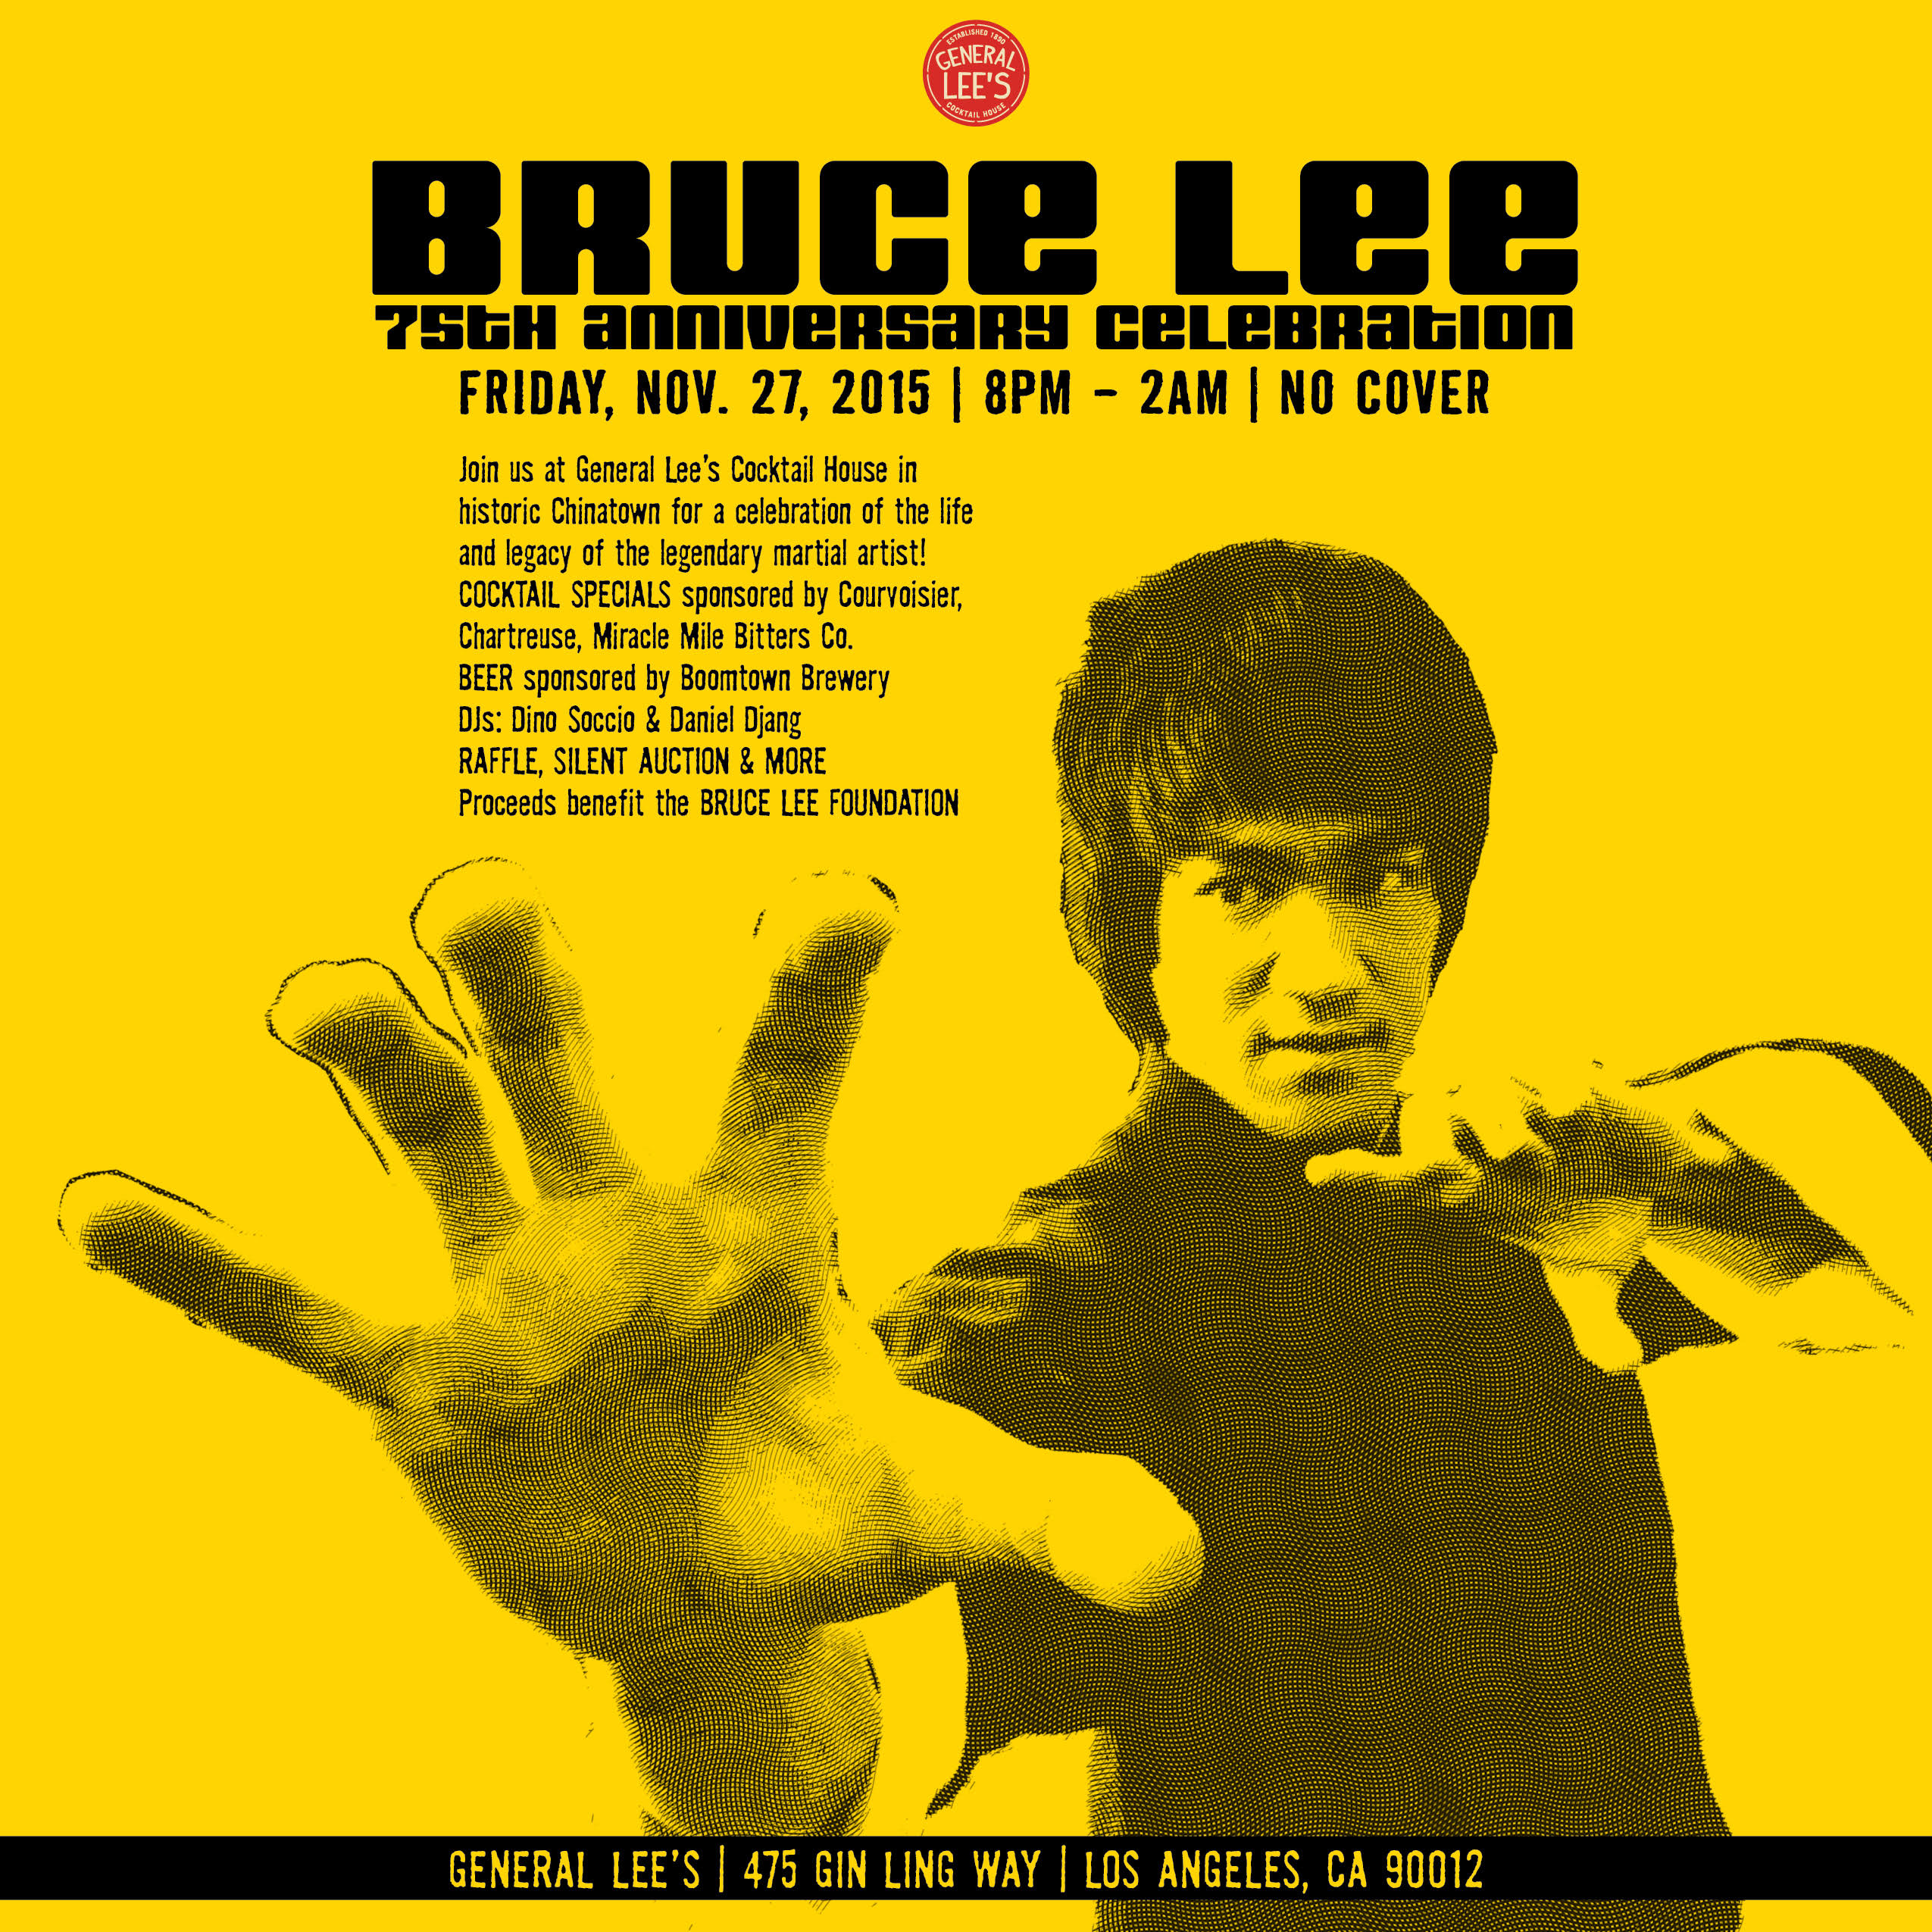 Bruce Lee 75th Anniversary at General Lee's